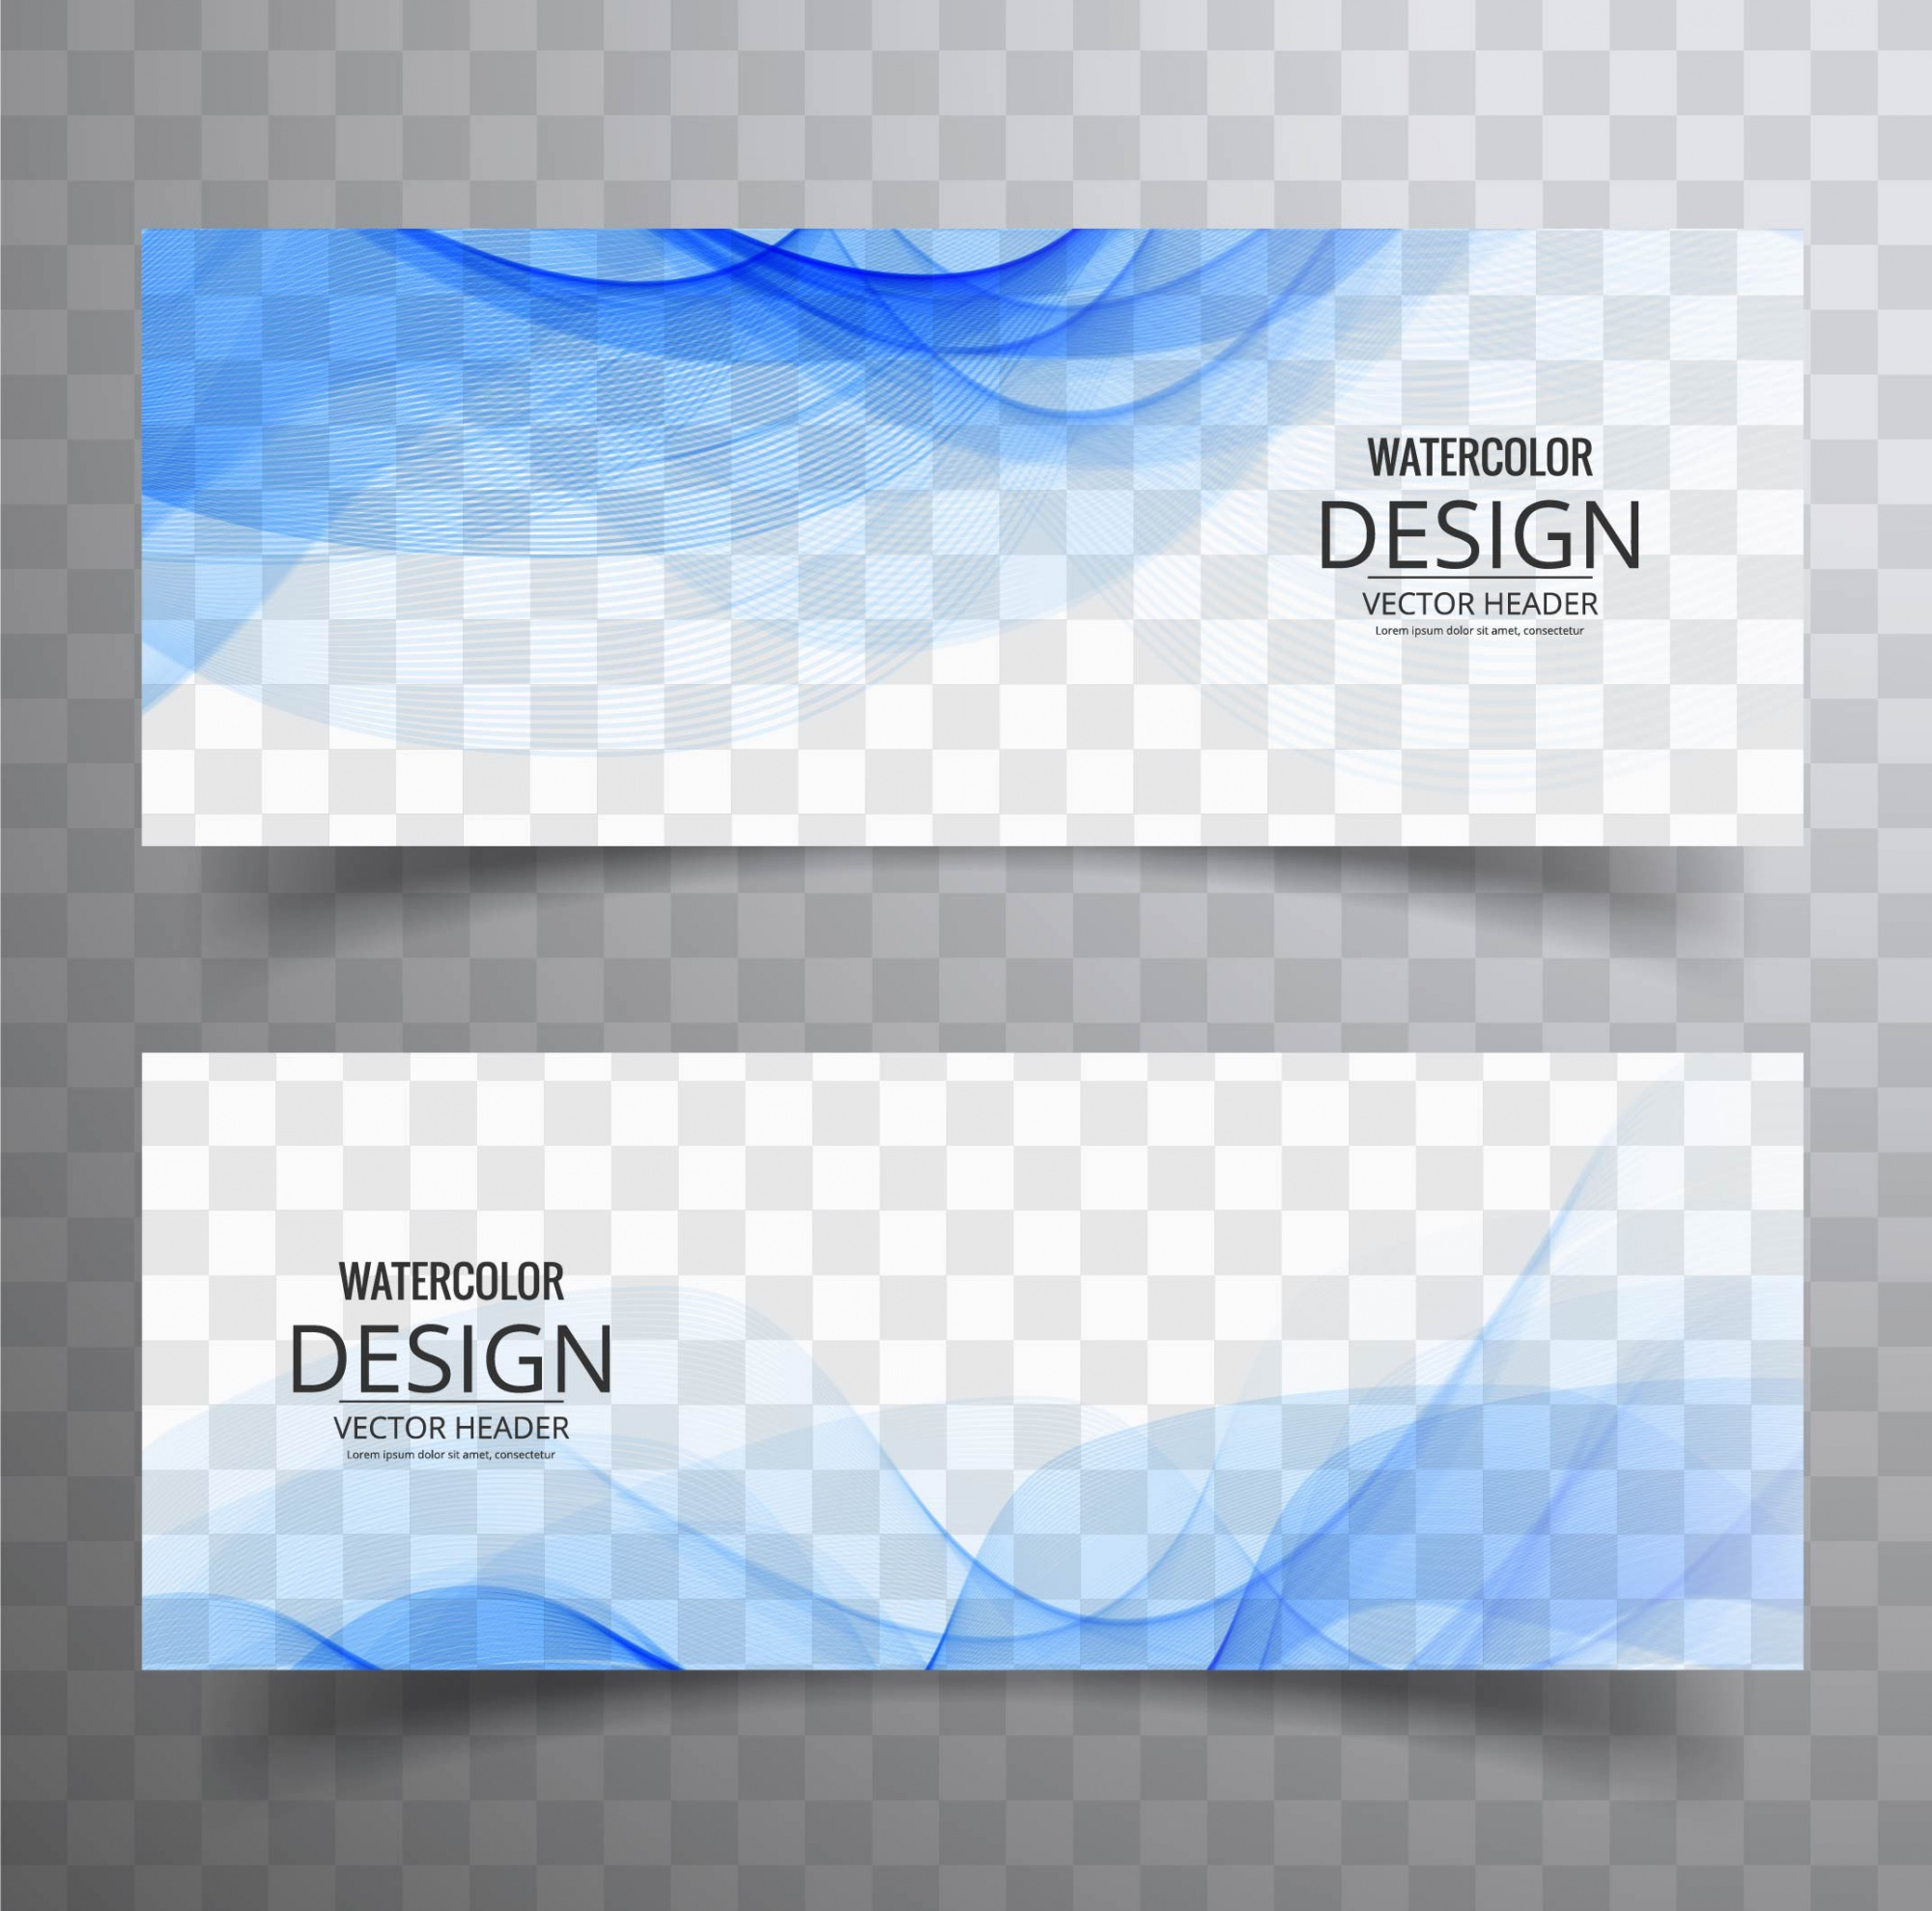 Two blue banners with wavy shapes